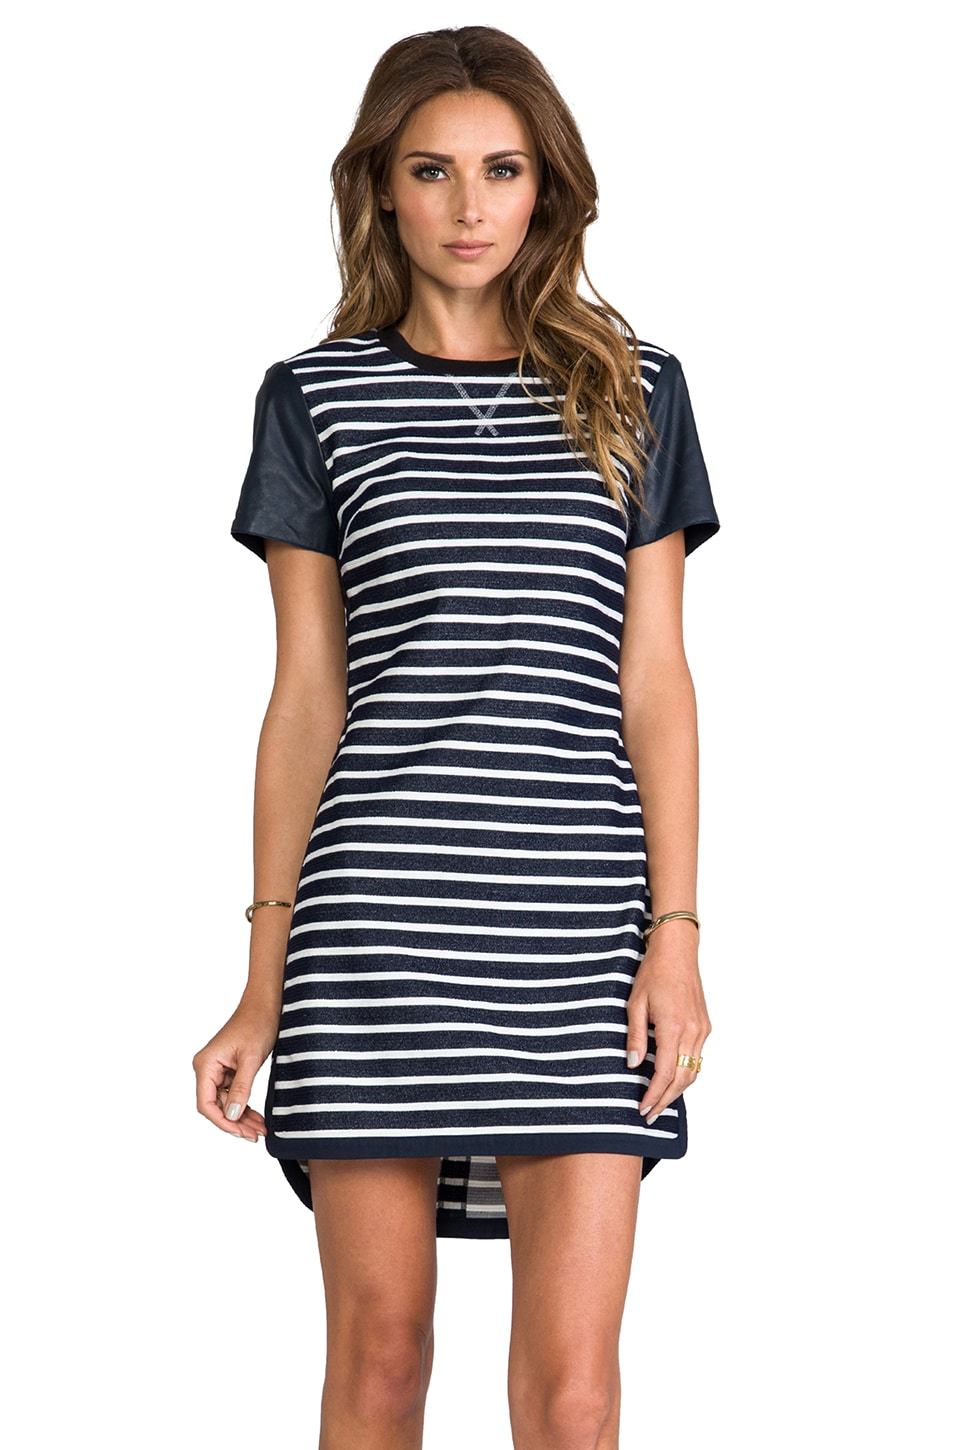 RACHEL ZOE Warren Striped Dress in Admiral/White